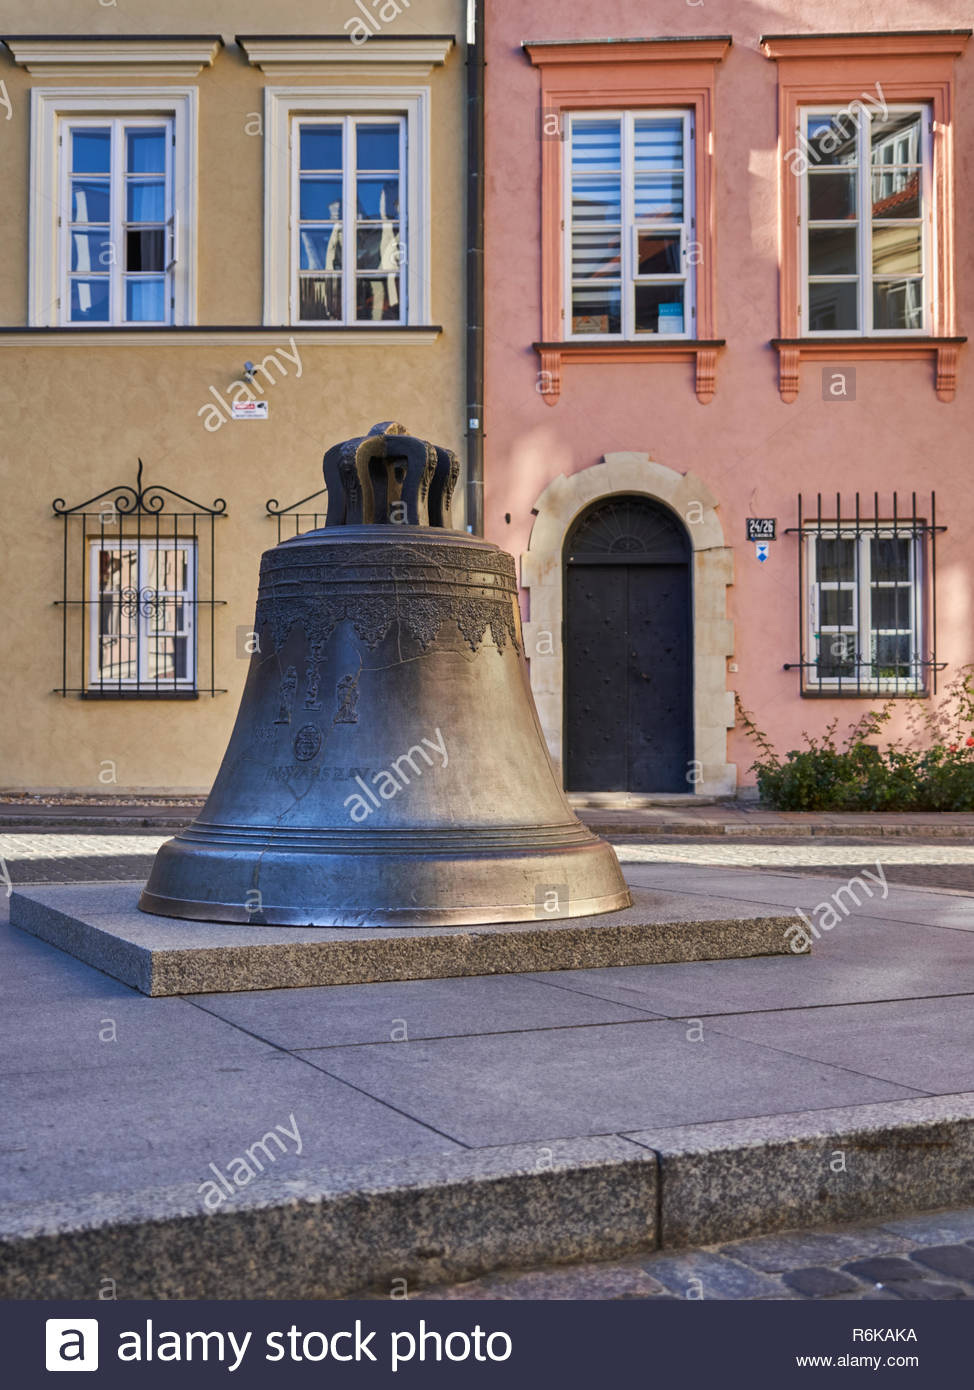 The Wishing Bell (Dzwon na Kanonii) in Warsaw, Poland, with a couple of colourful buildings in the background. - Stock Image